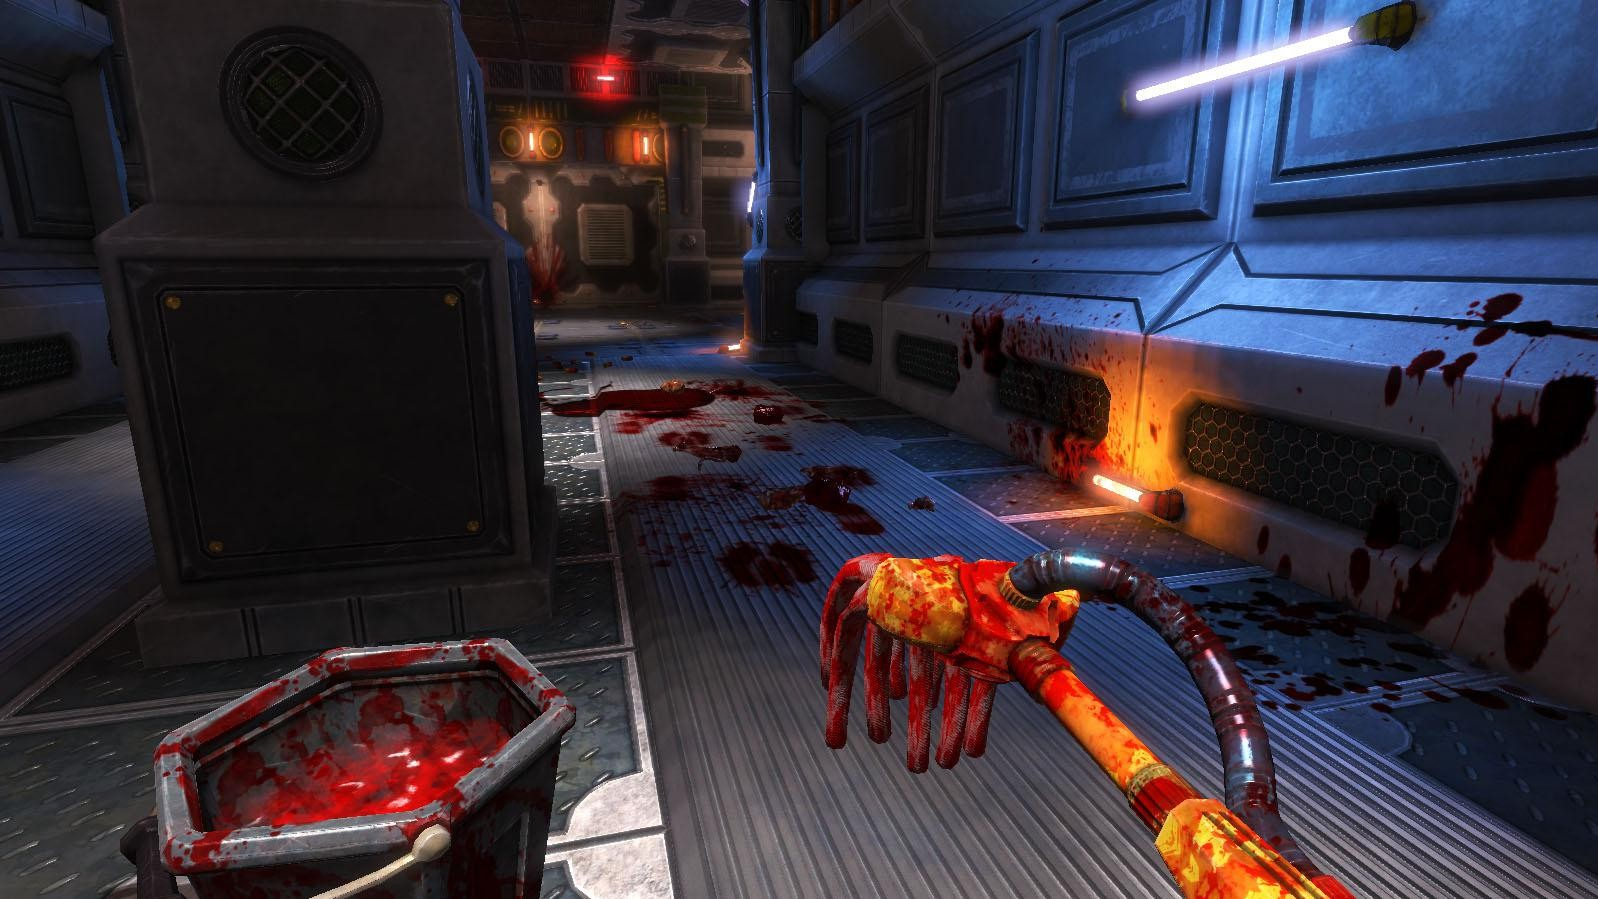 In 'Viscera Cleanup Detail' maak je de troep schoon die achterblijft in een first person shooter